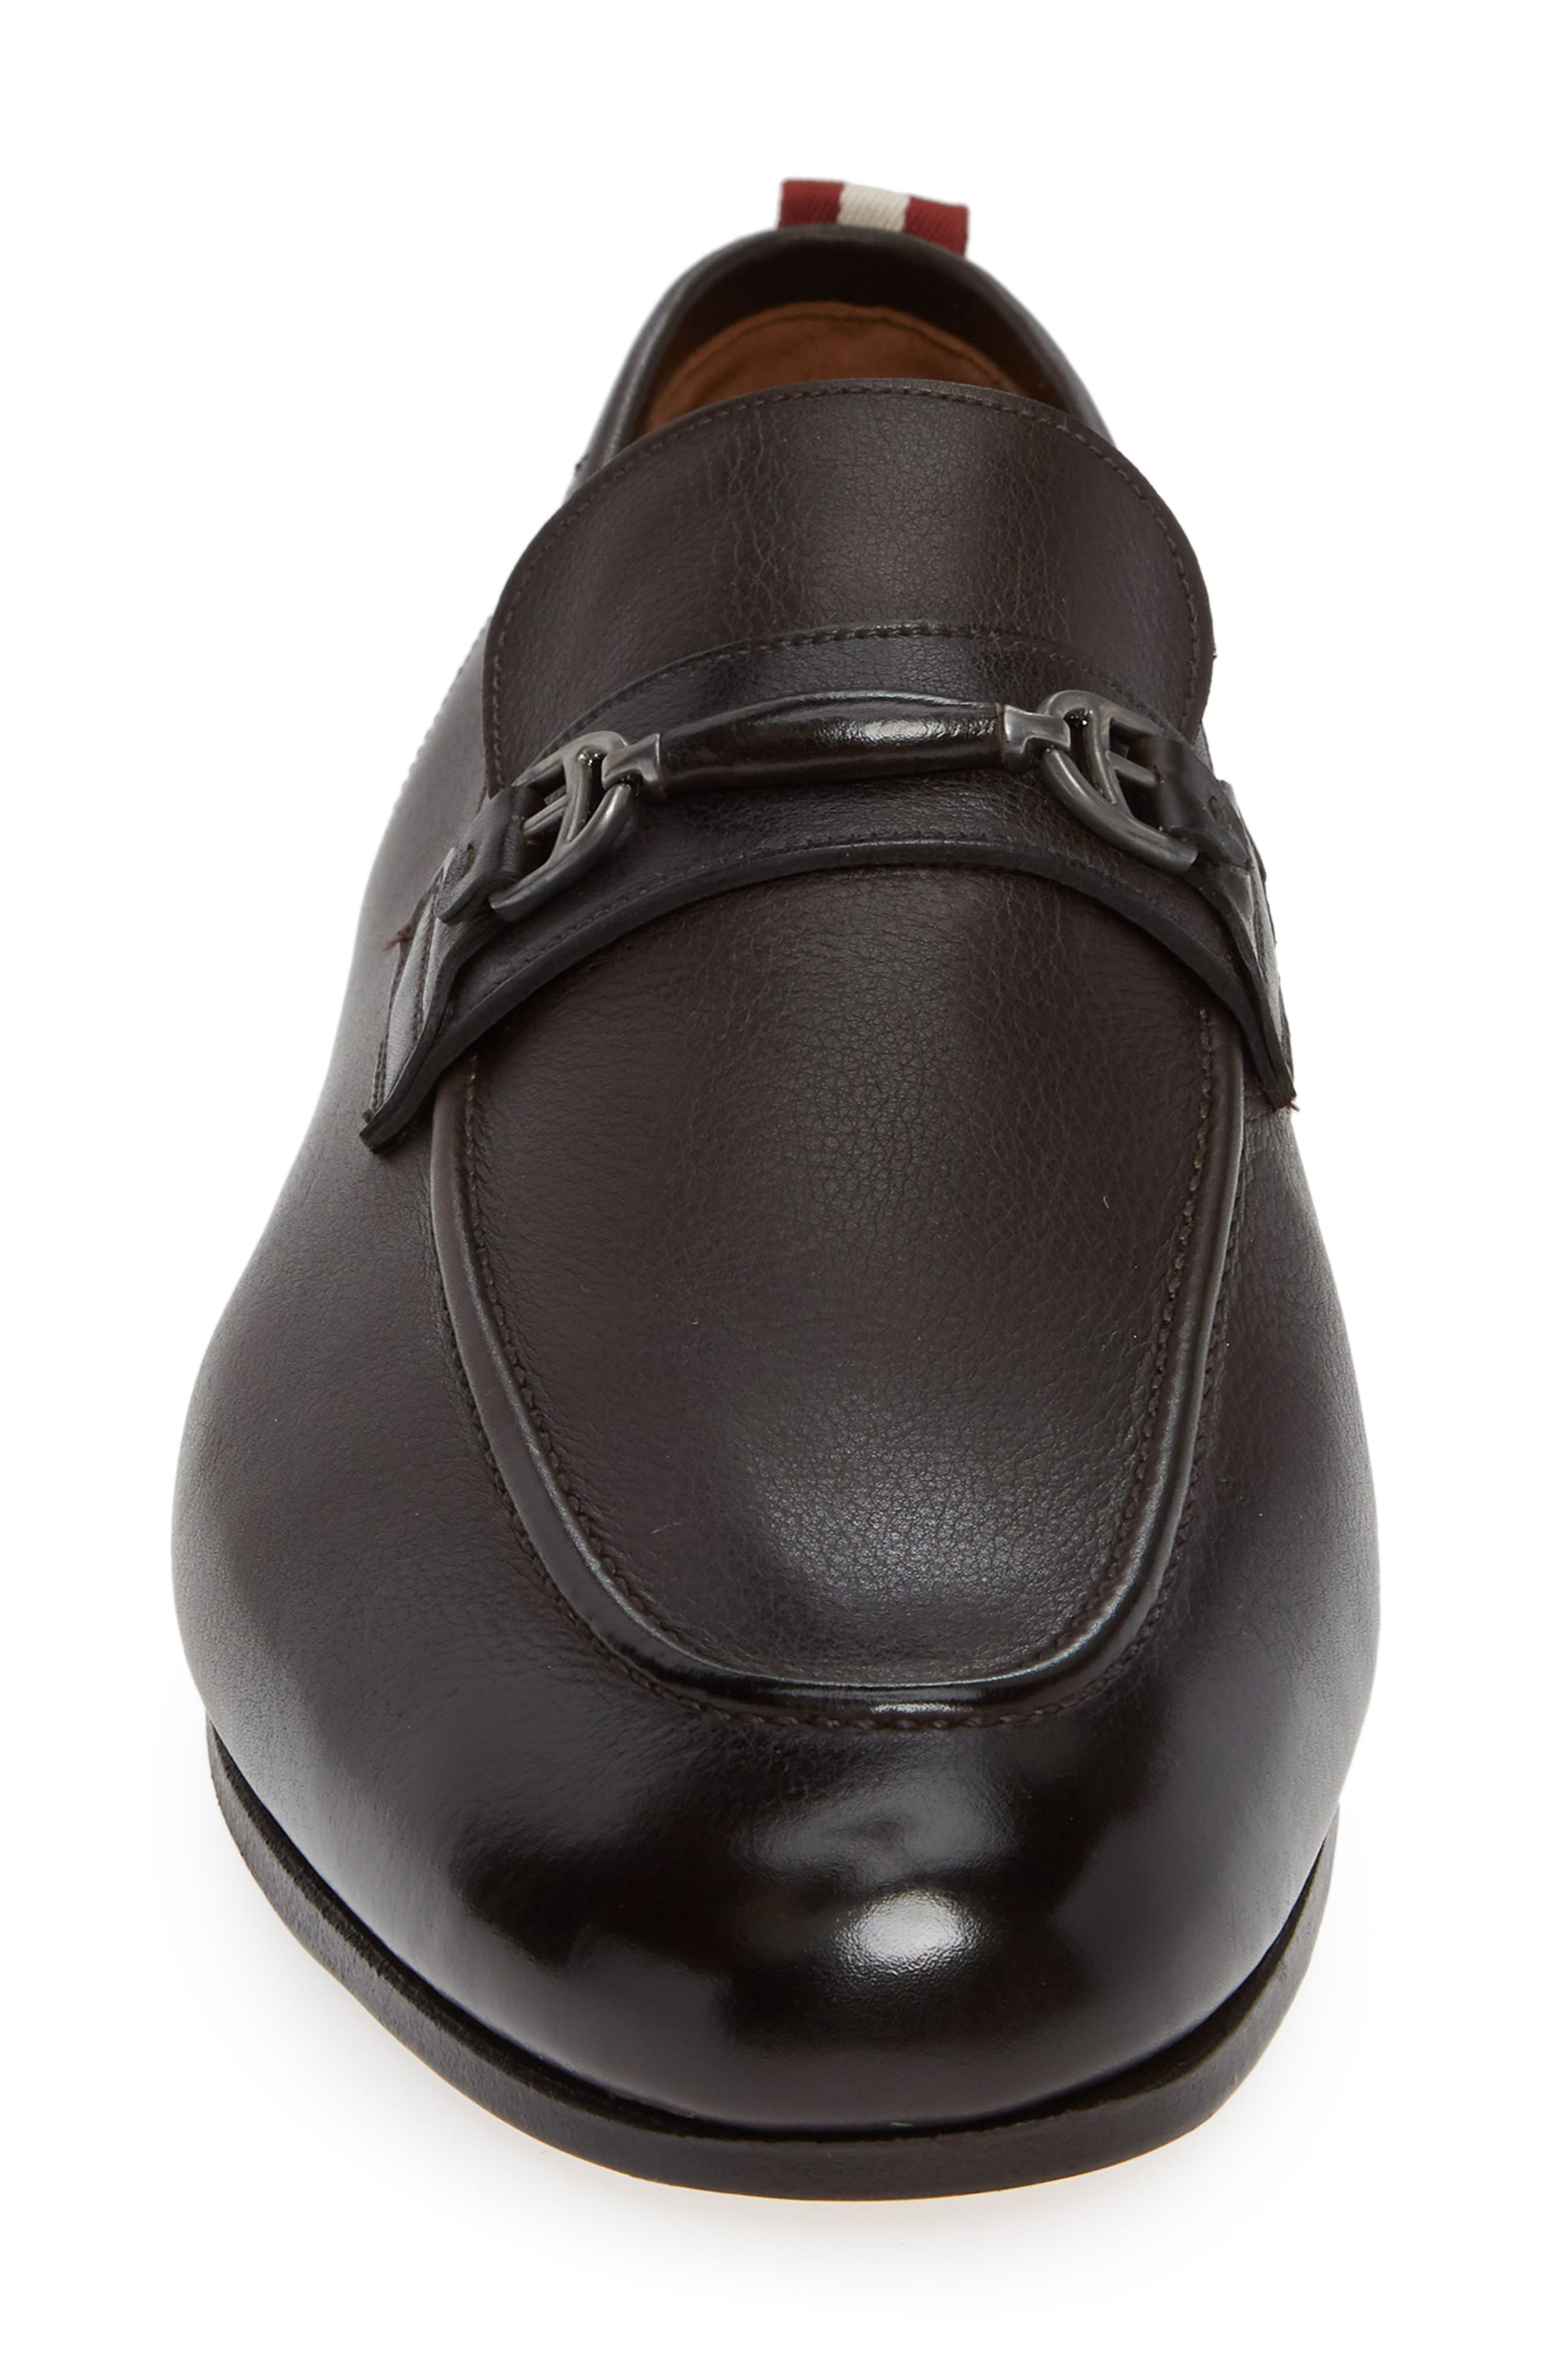 Plintor Loafer,                             Alternate thumbnail 4, color,                             COFFEE BROWN